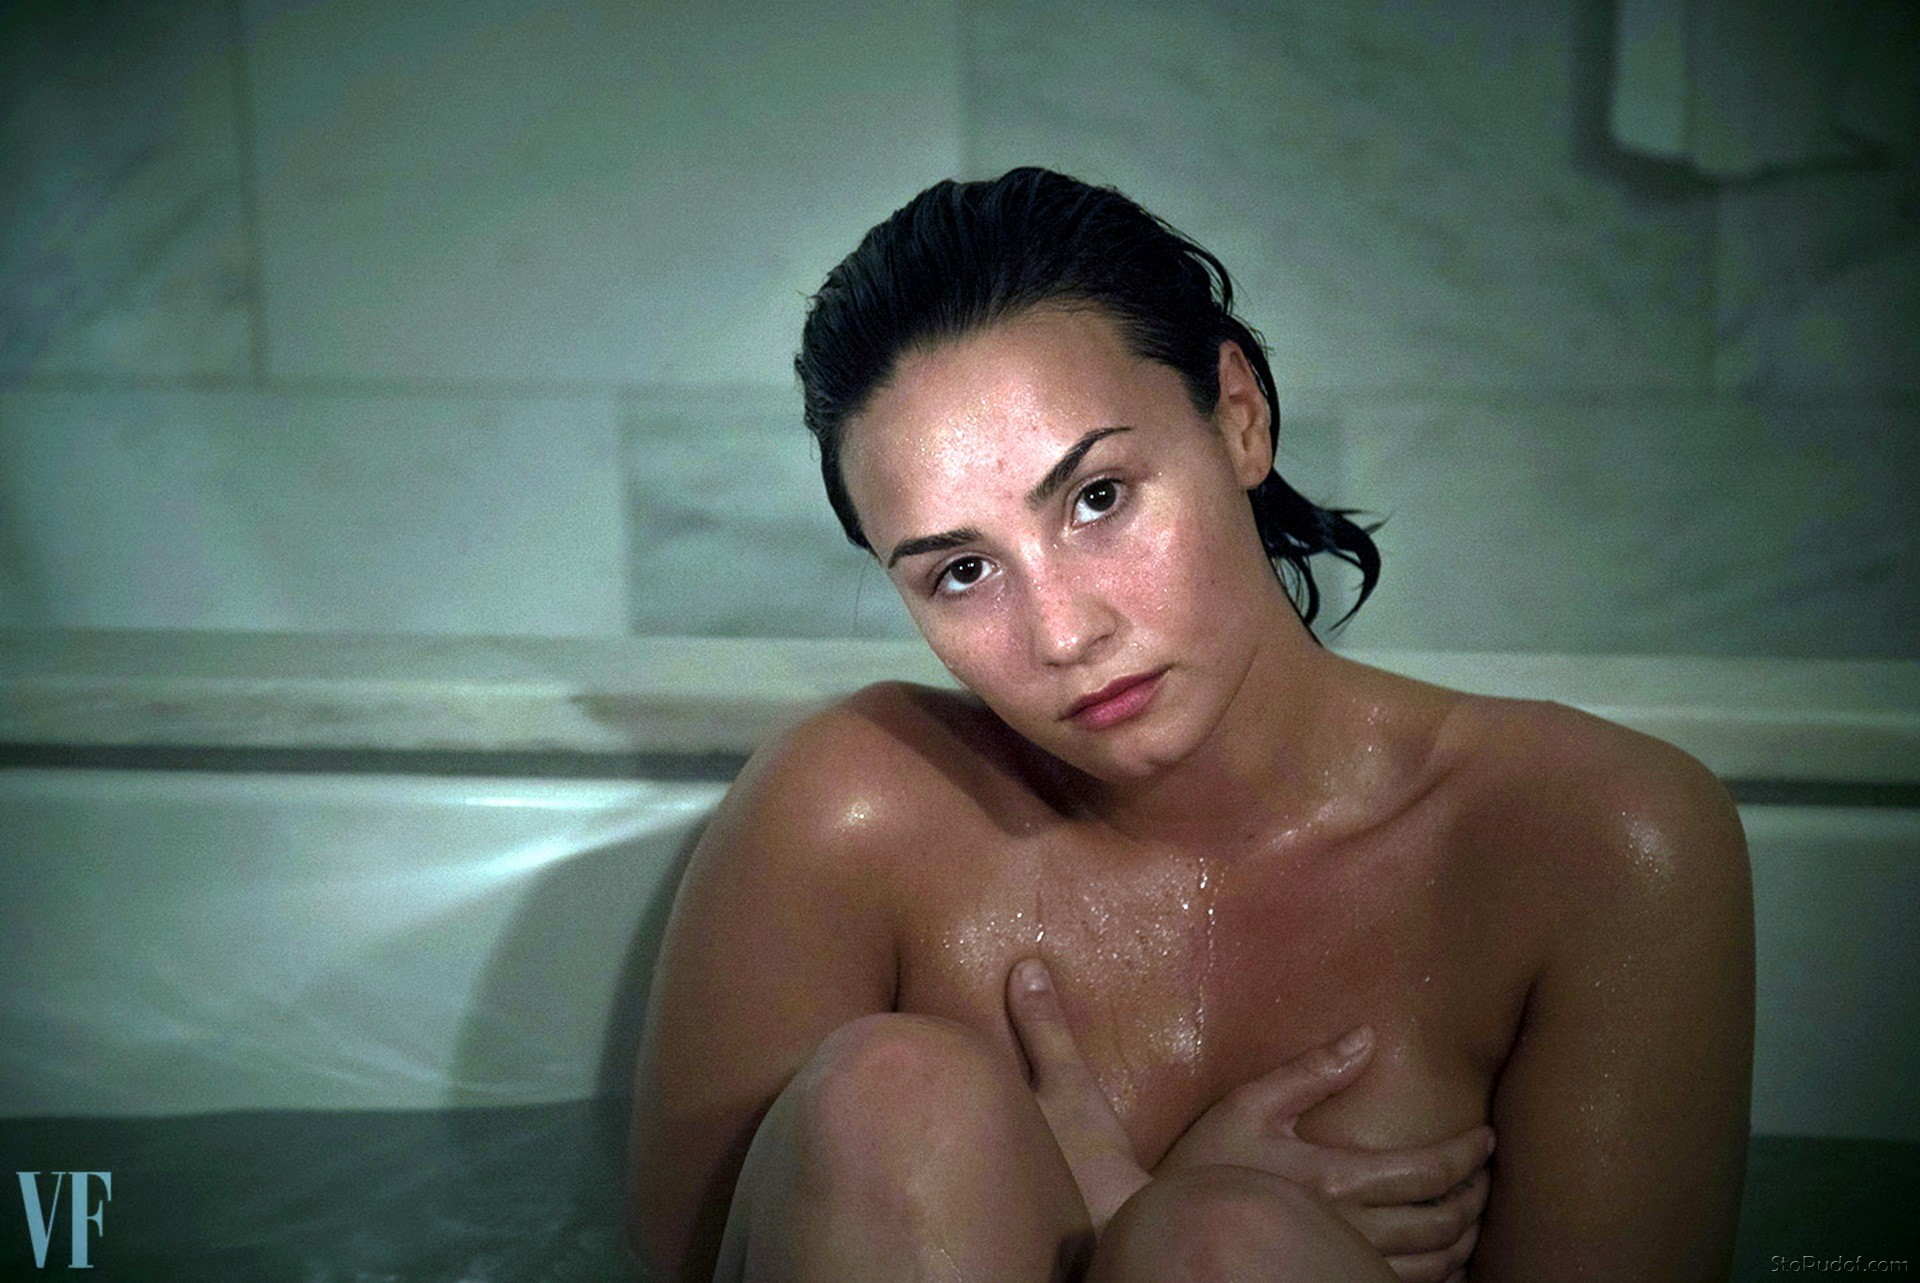 see photos of Demi Lovato nude - UkPhotoSafari